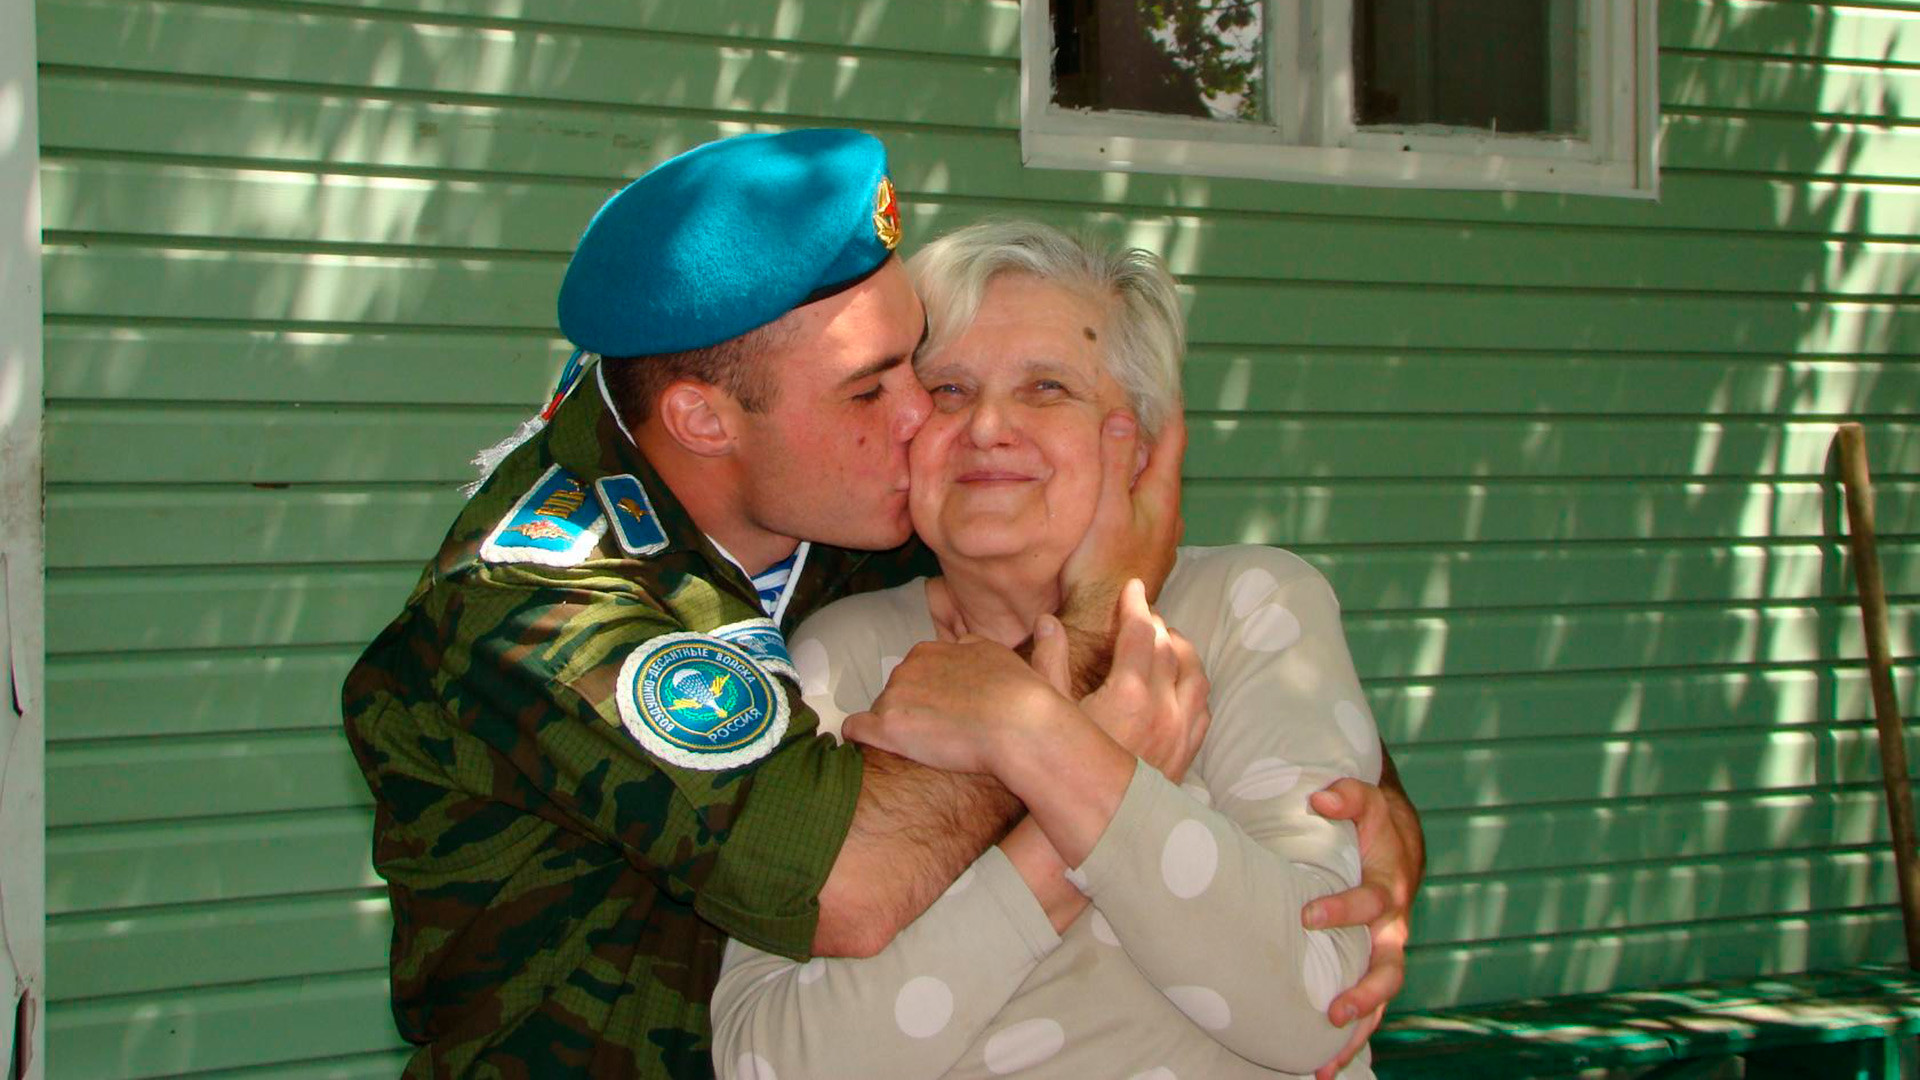 Tatiana's adopted son kisses his mum when leaving to serve at the army. (May 2018)